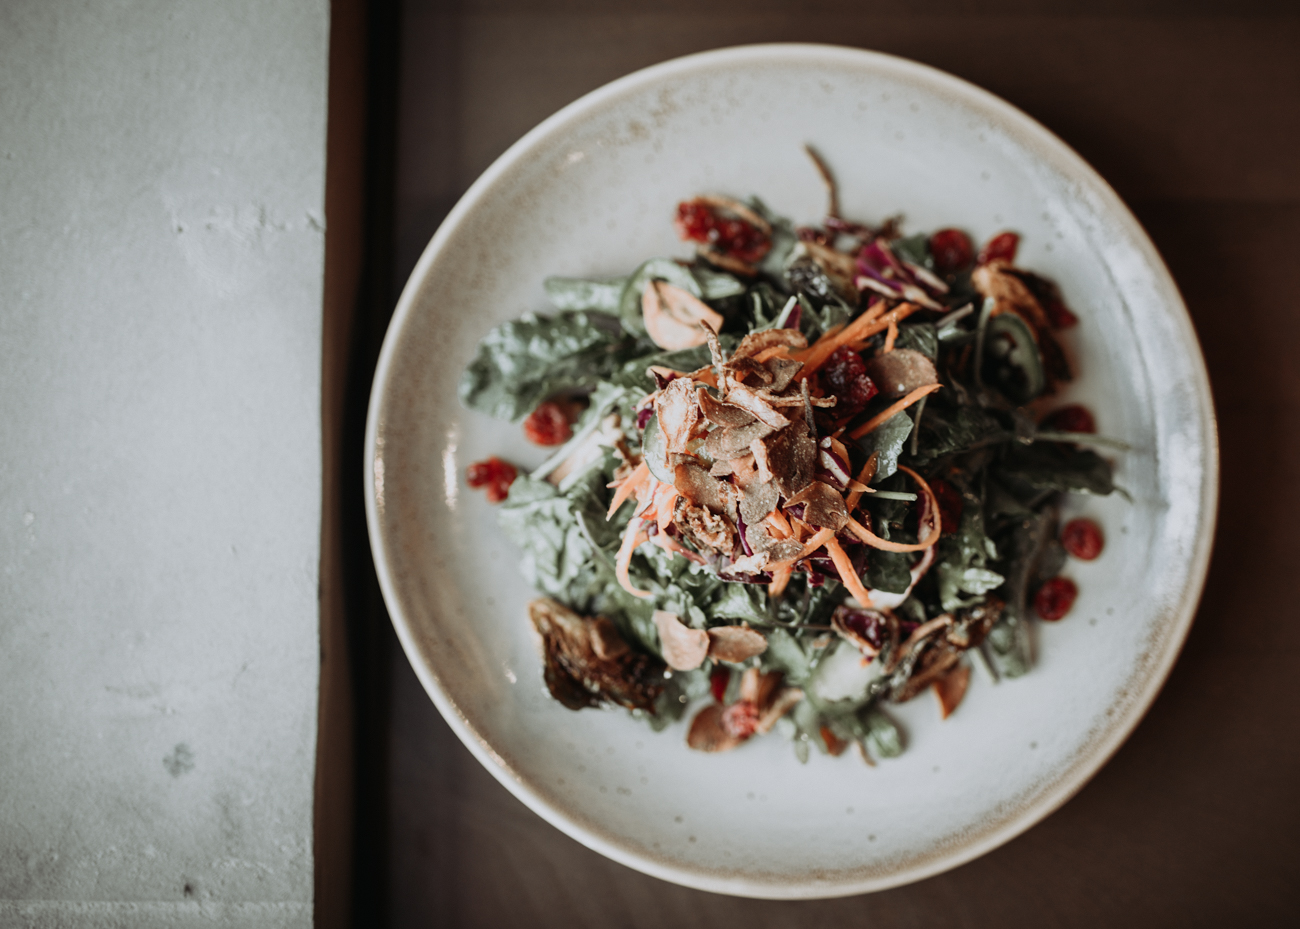 Kale and brussels sprouts salad with marinated cabbage, carrots, jalapenos, dried cranberries, and crispy shallots tossed in a sweet chili ginger vinaigrette / Image: Brianna Long // Published: 5.17.18